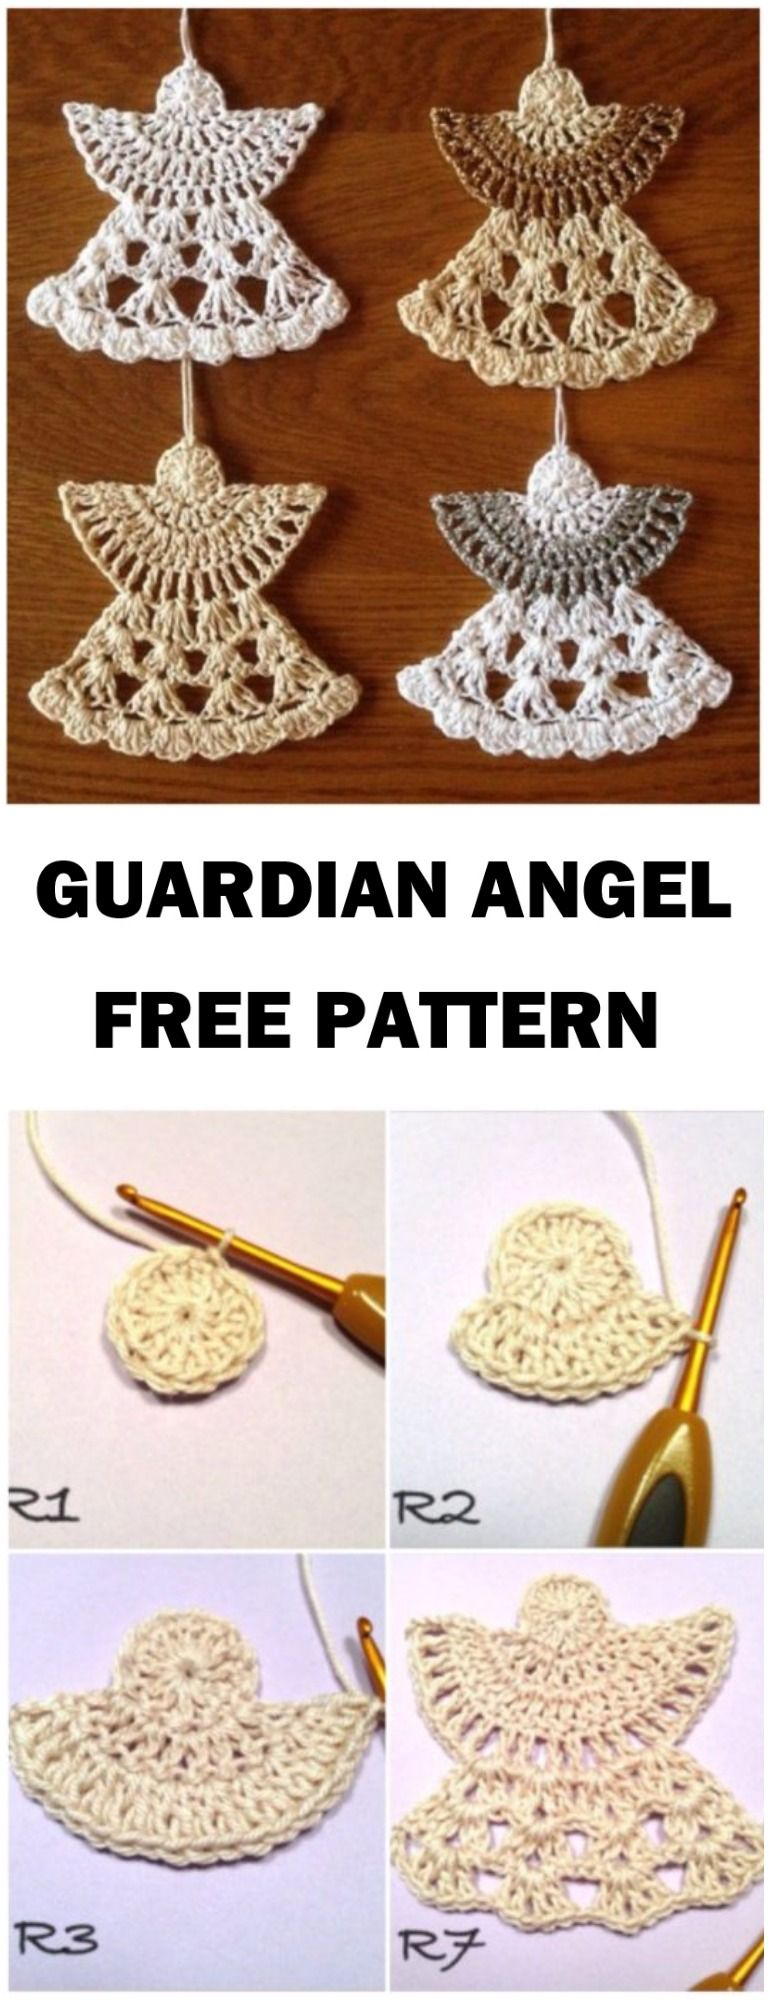 Learn To Crochet Guardian Angel